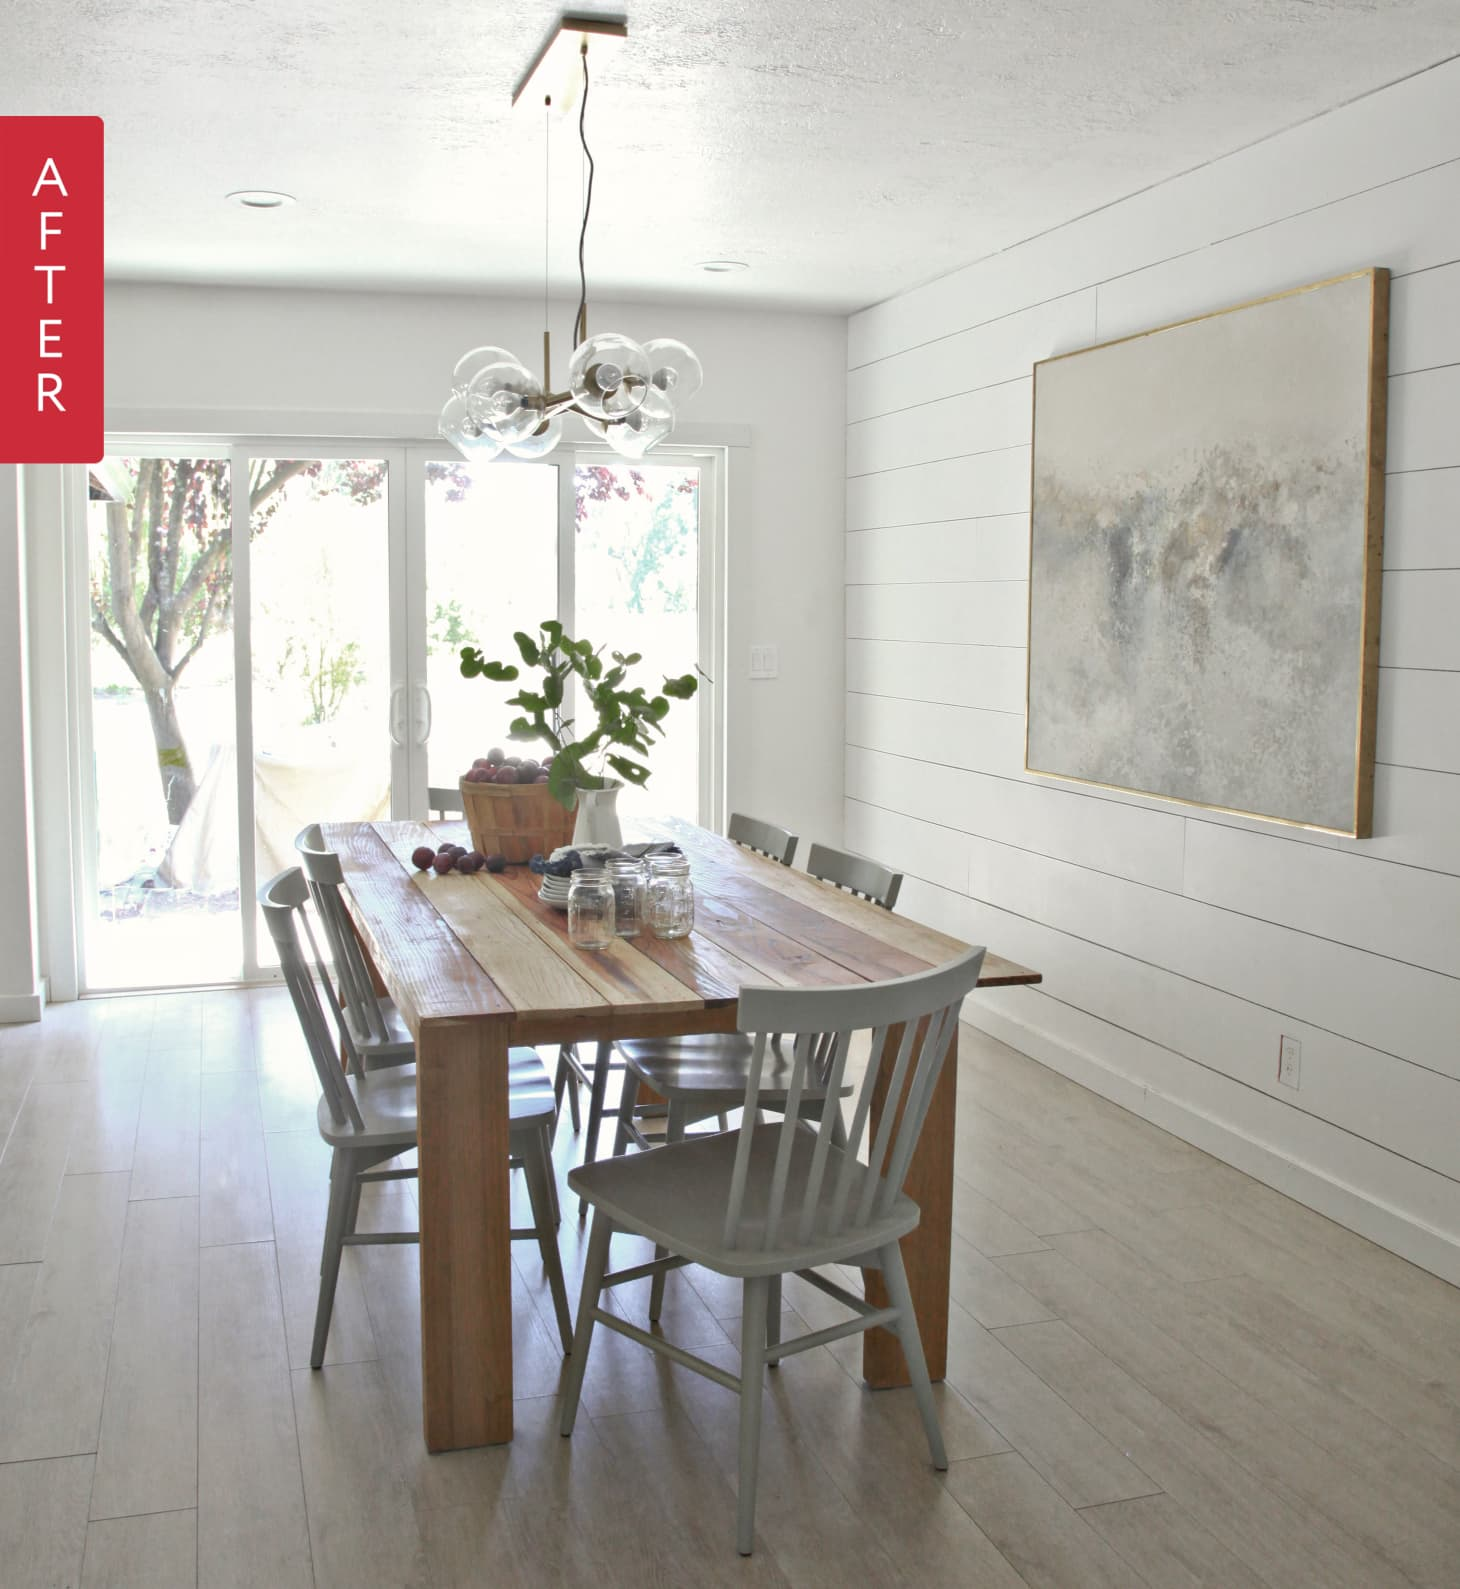 Looking For Apartment: Before & After: A Modern, Scandinavian Inspired Look For A